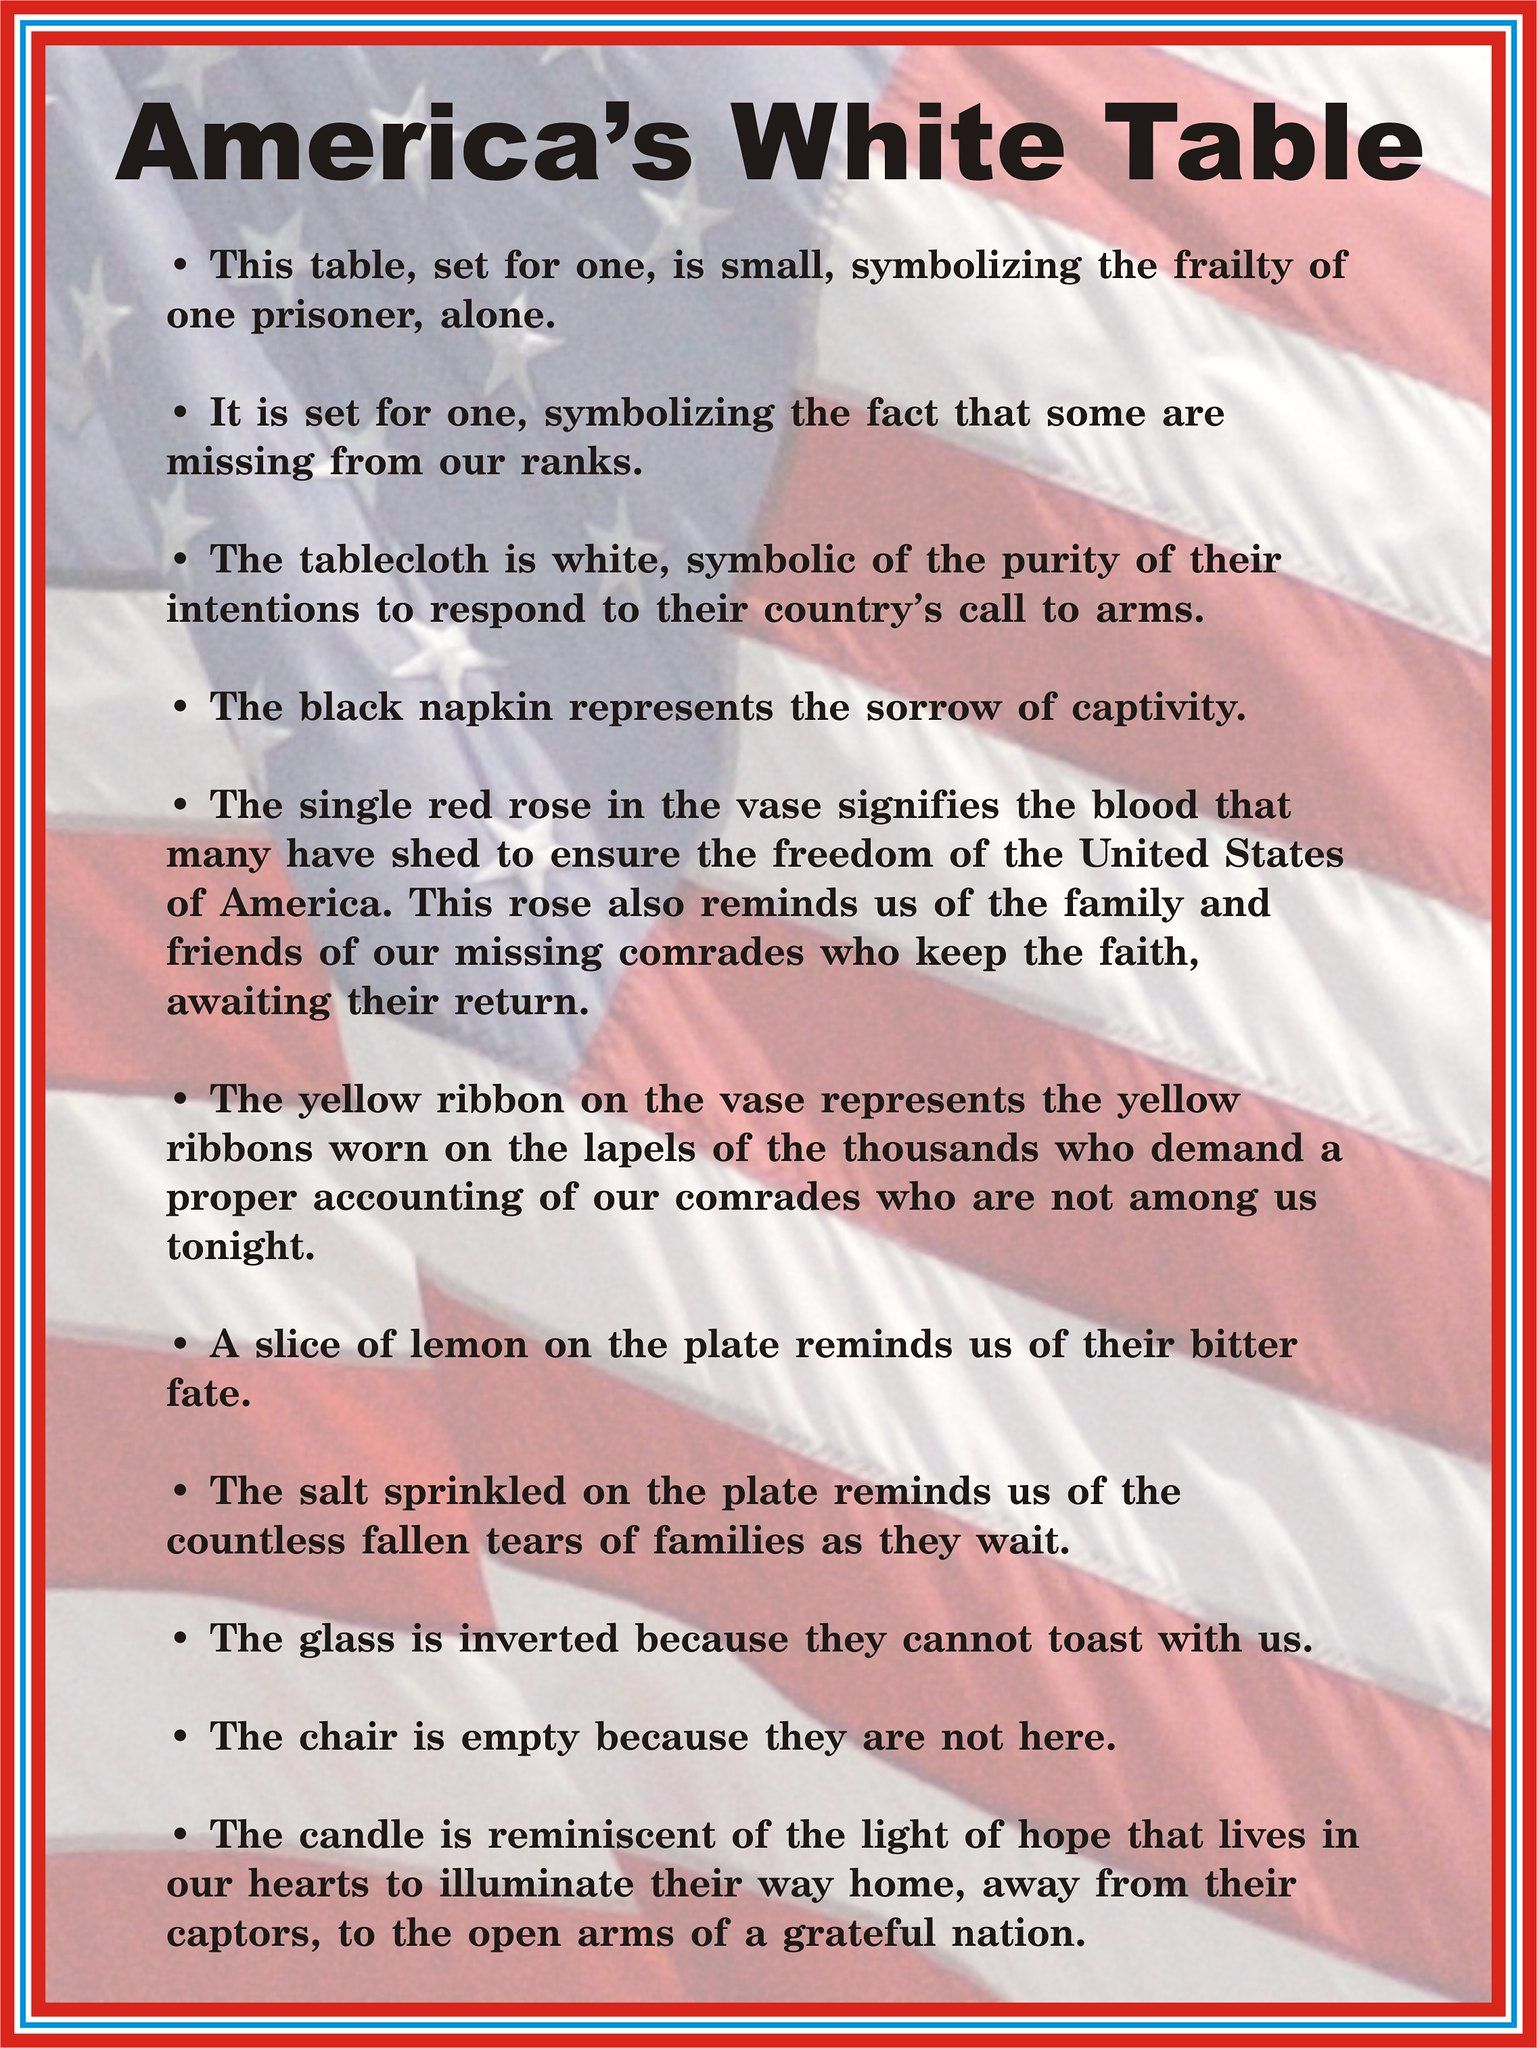 Veterans Day White Table display description sign